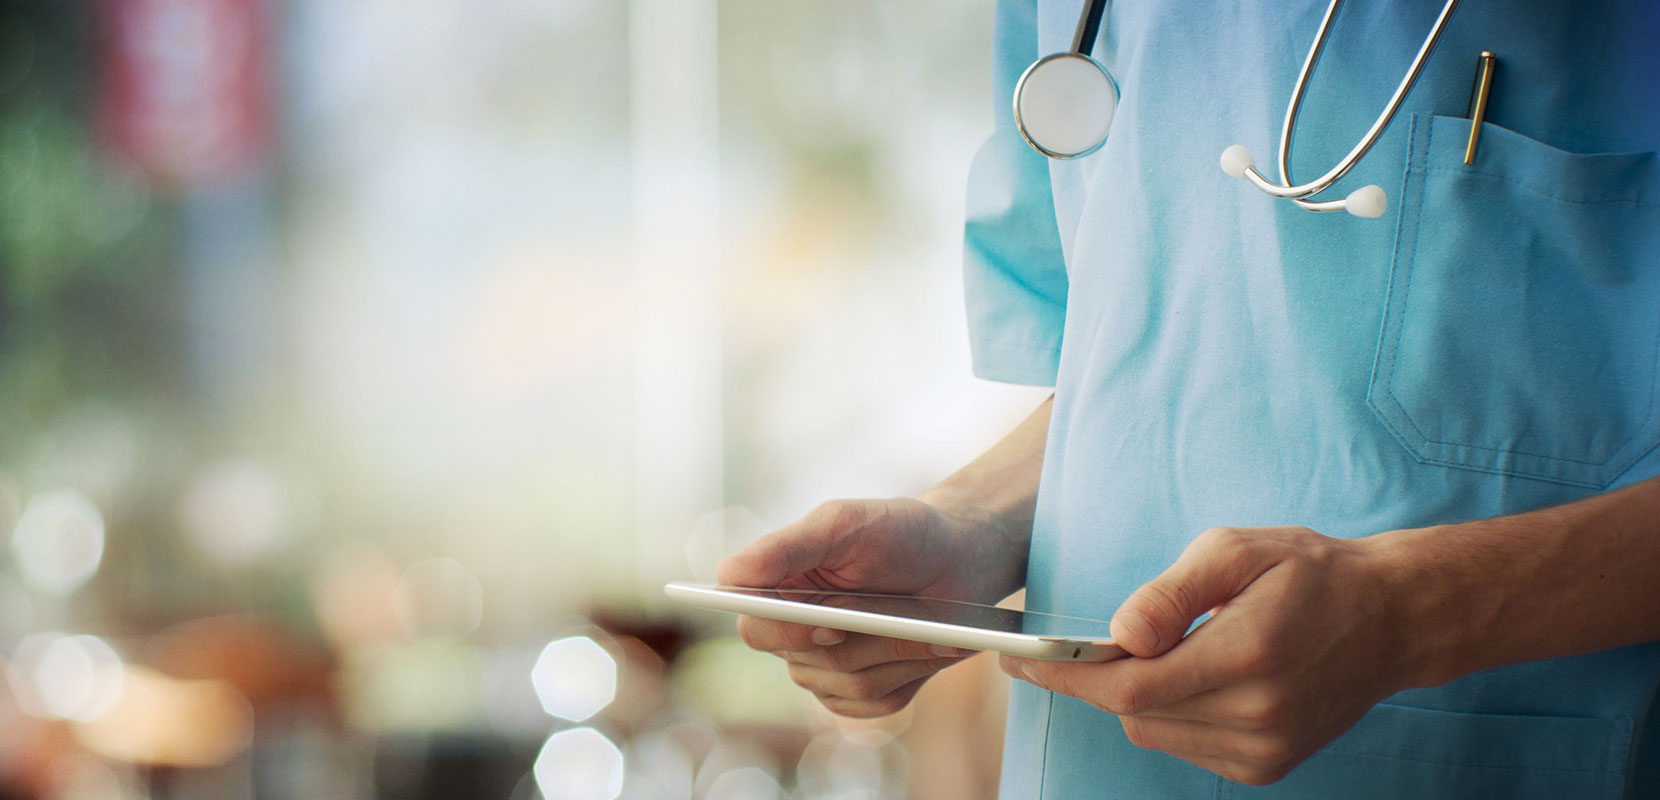 A doctor holds an tablet in his hands.